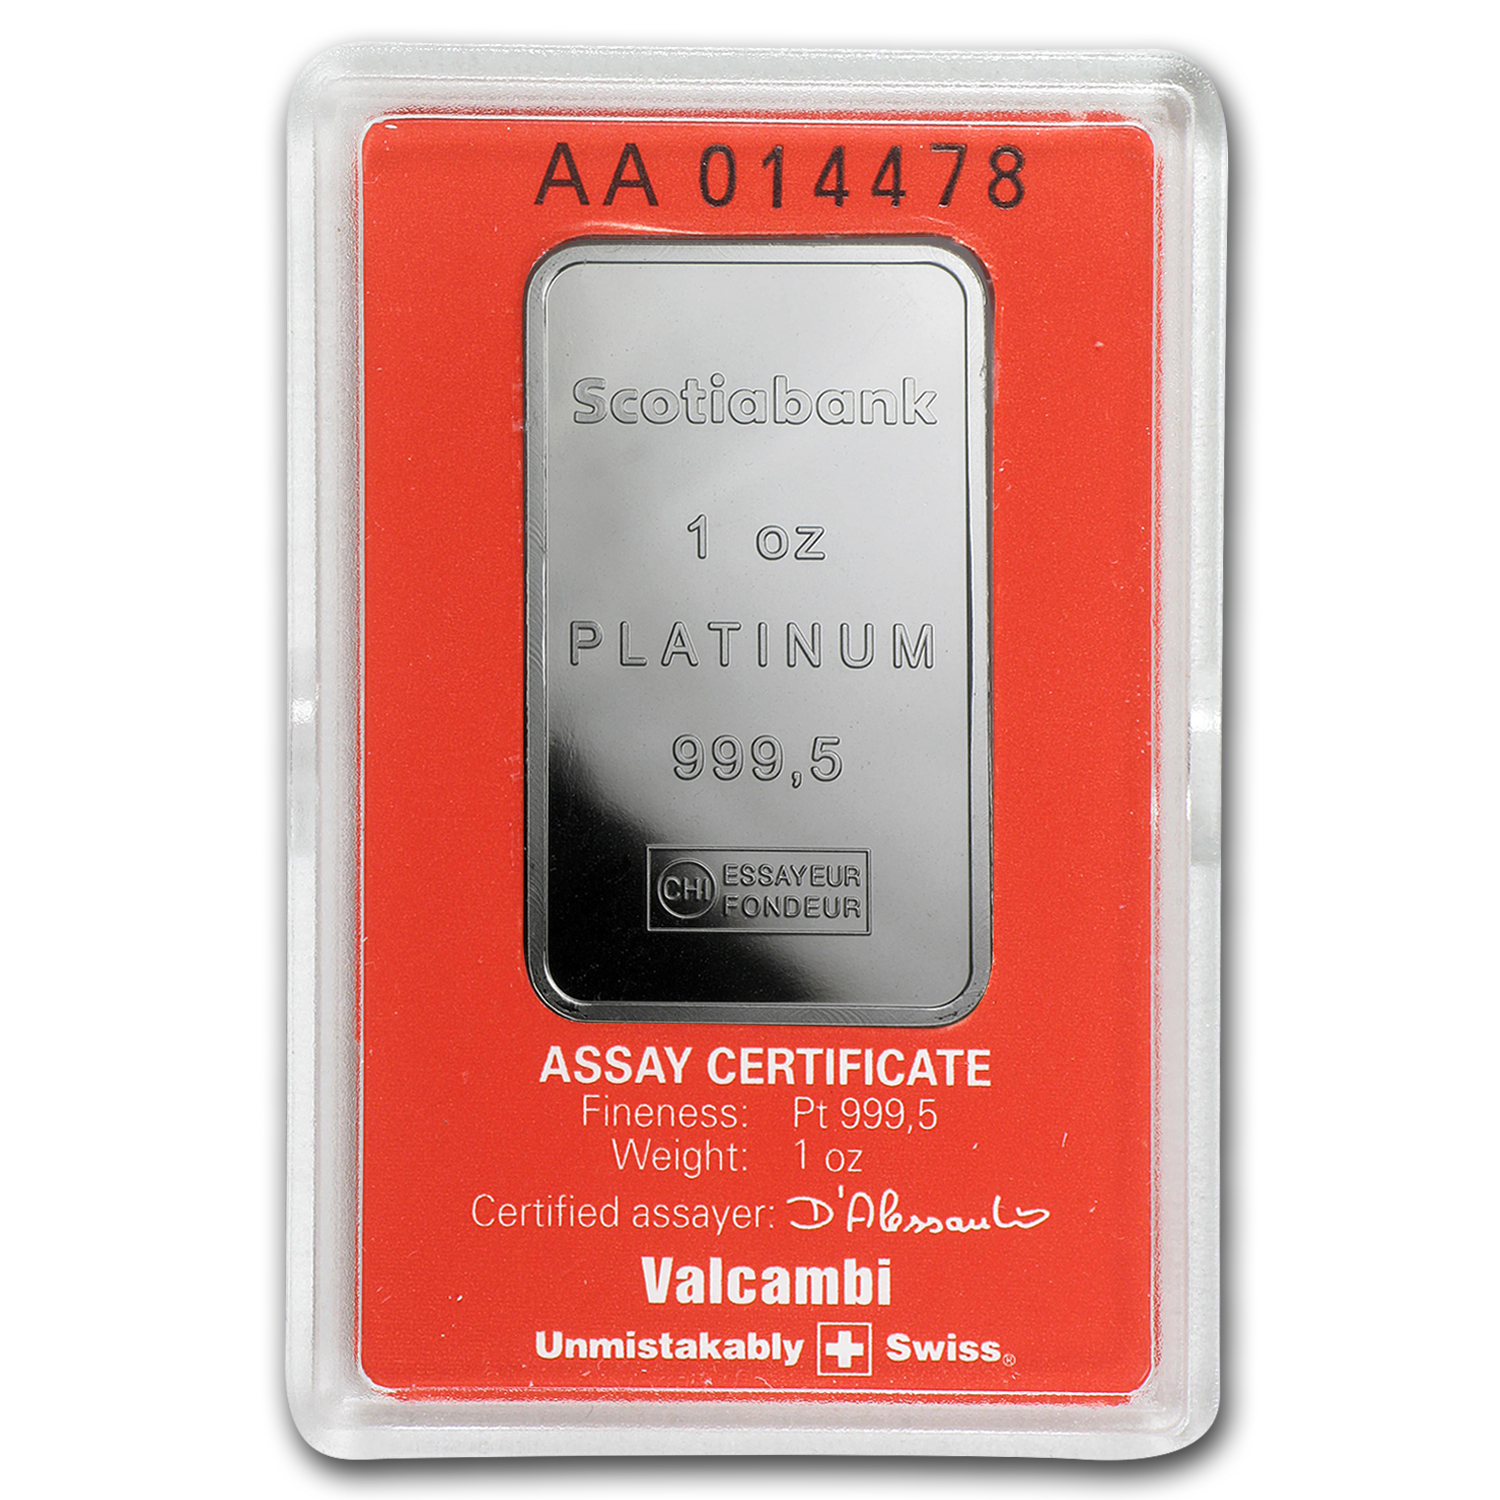 1 oz Platinum Bar - Scotiabank (In Assay)